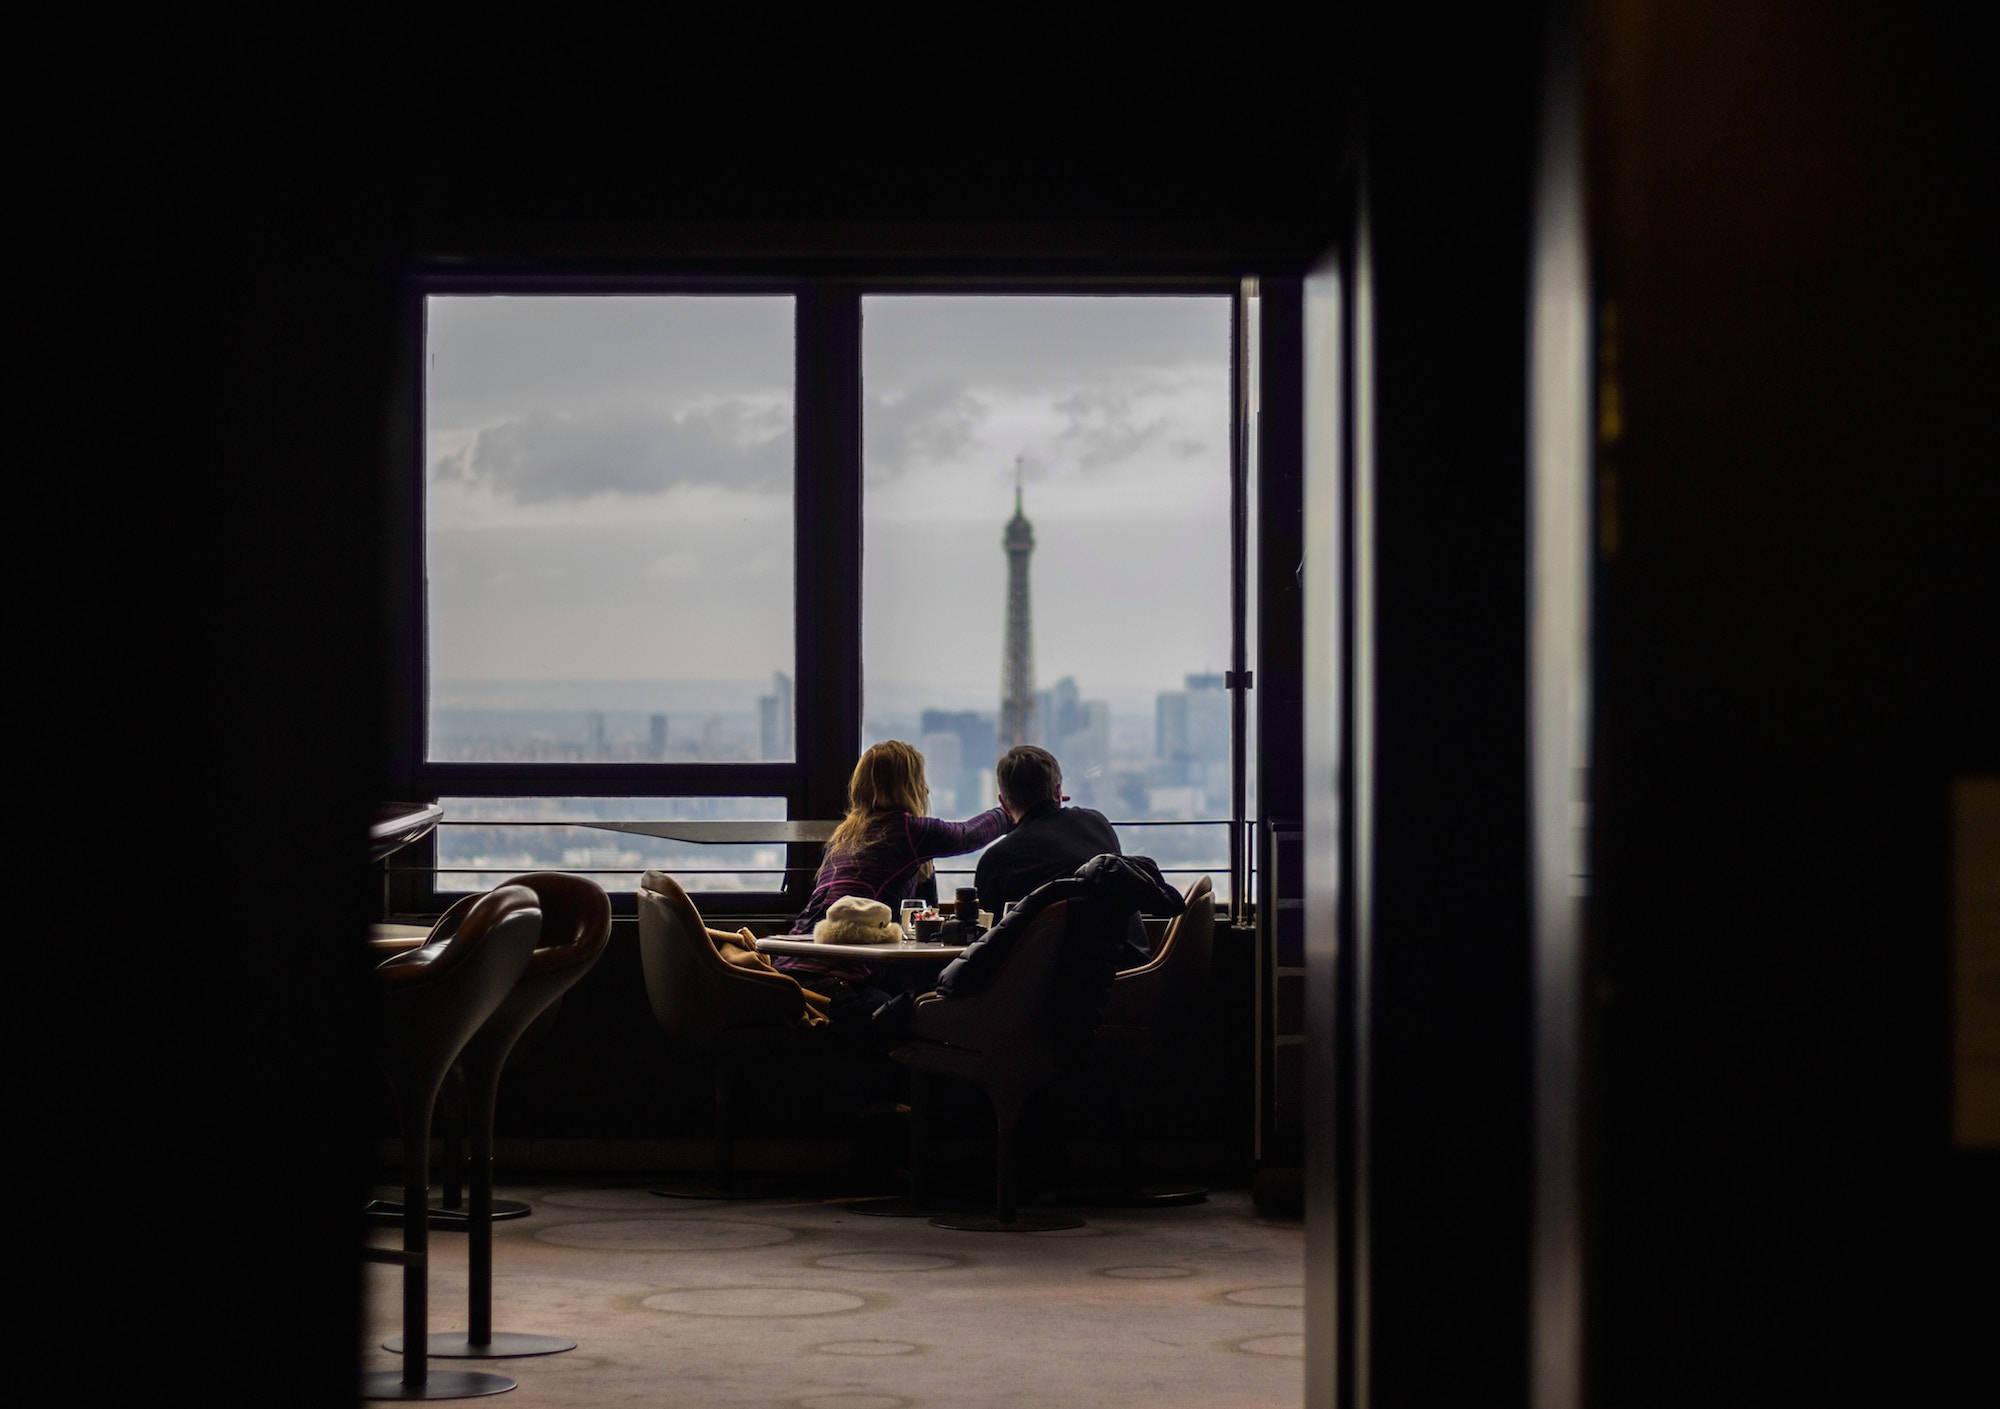 Learning French is easier when you have a French friends you can practise with, like this woman and man having coffee at a café overlooking the Eiffel Tower.